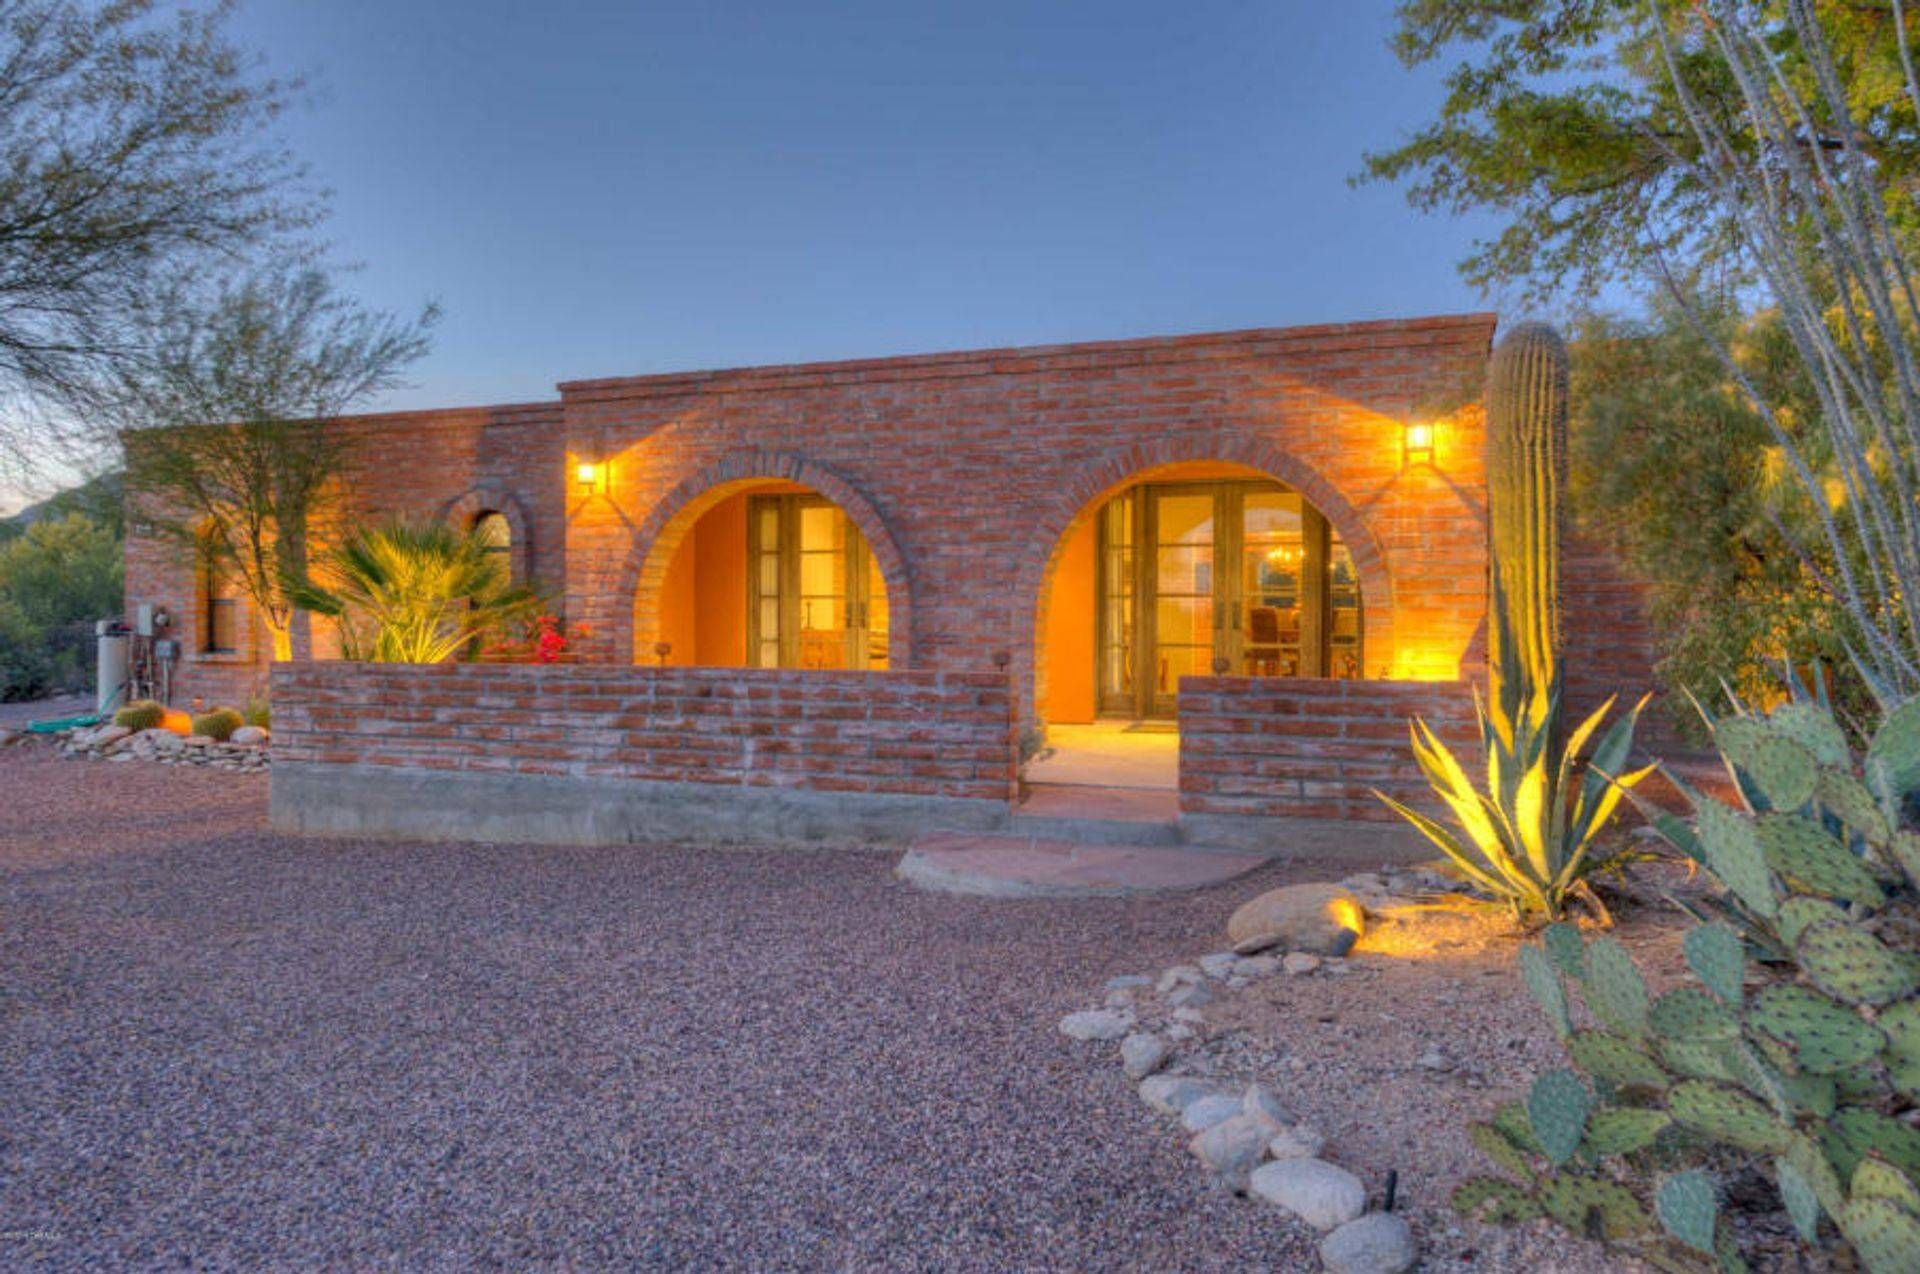 Handyman - Beyond Paint - Tucson, AZ - Kitchen and Bath ...